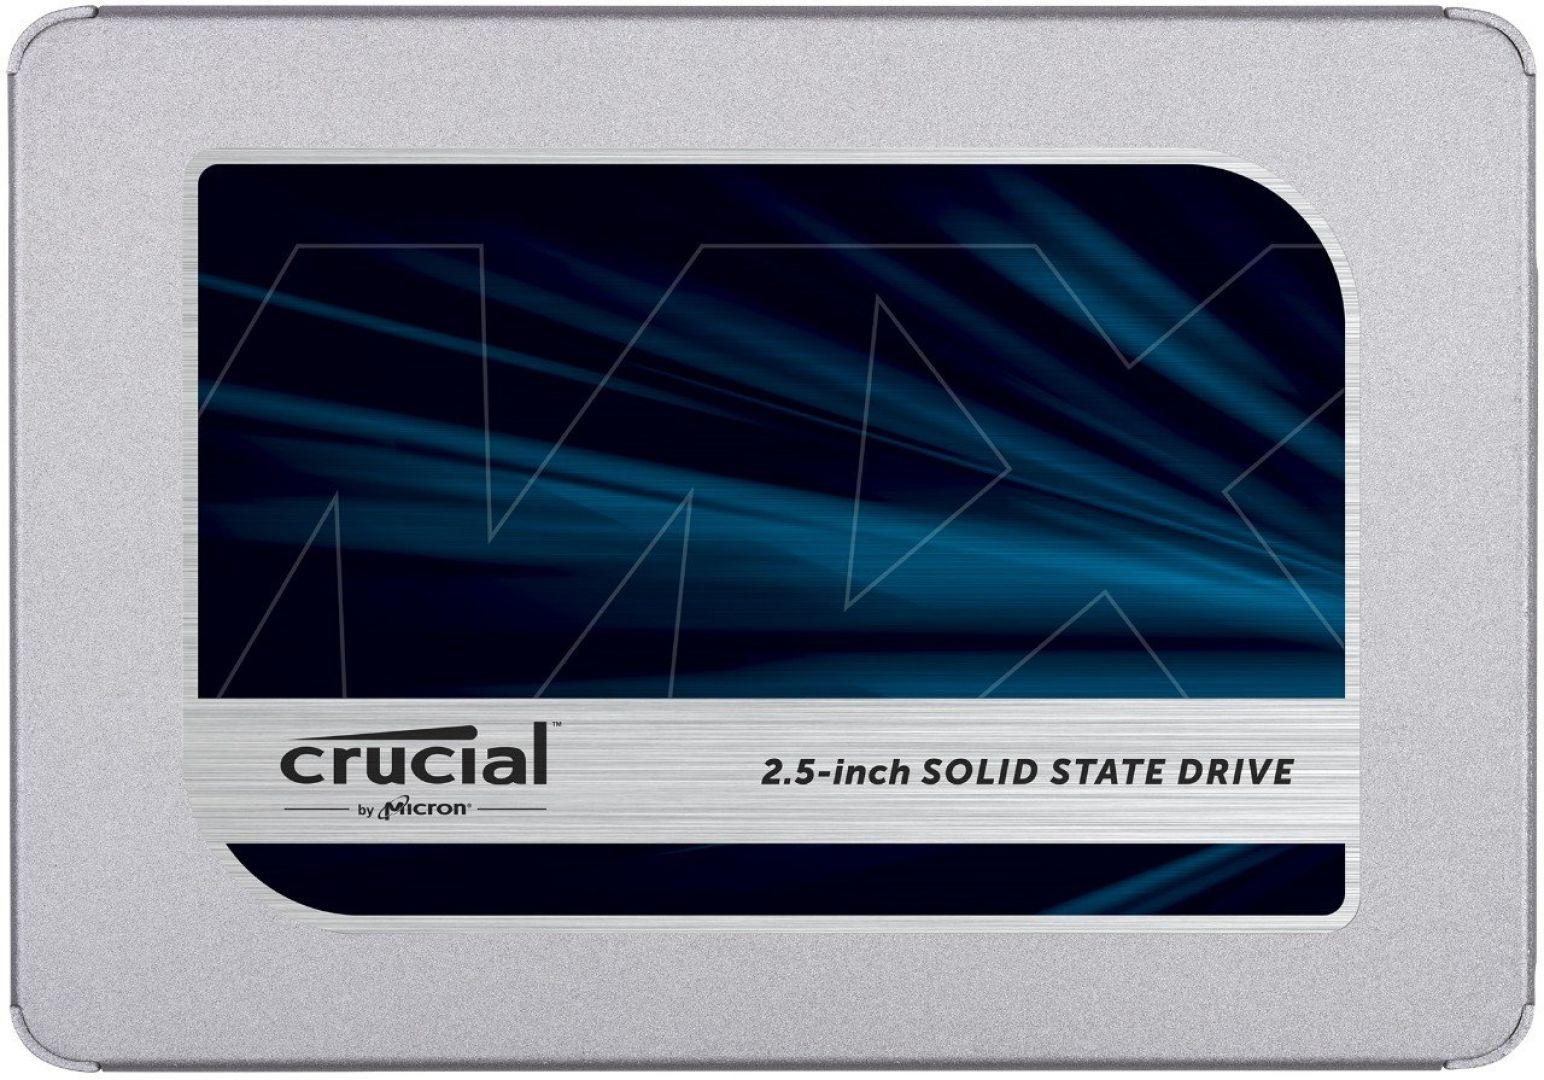 Crucial CT500MX500SSD1 product image.